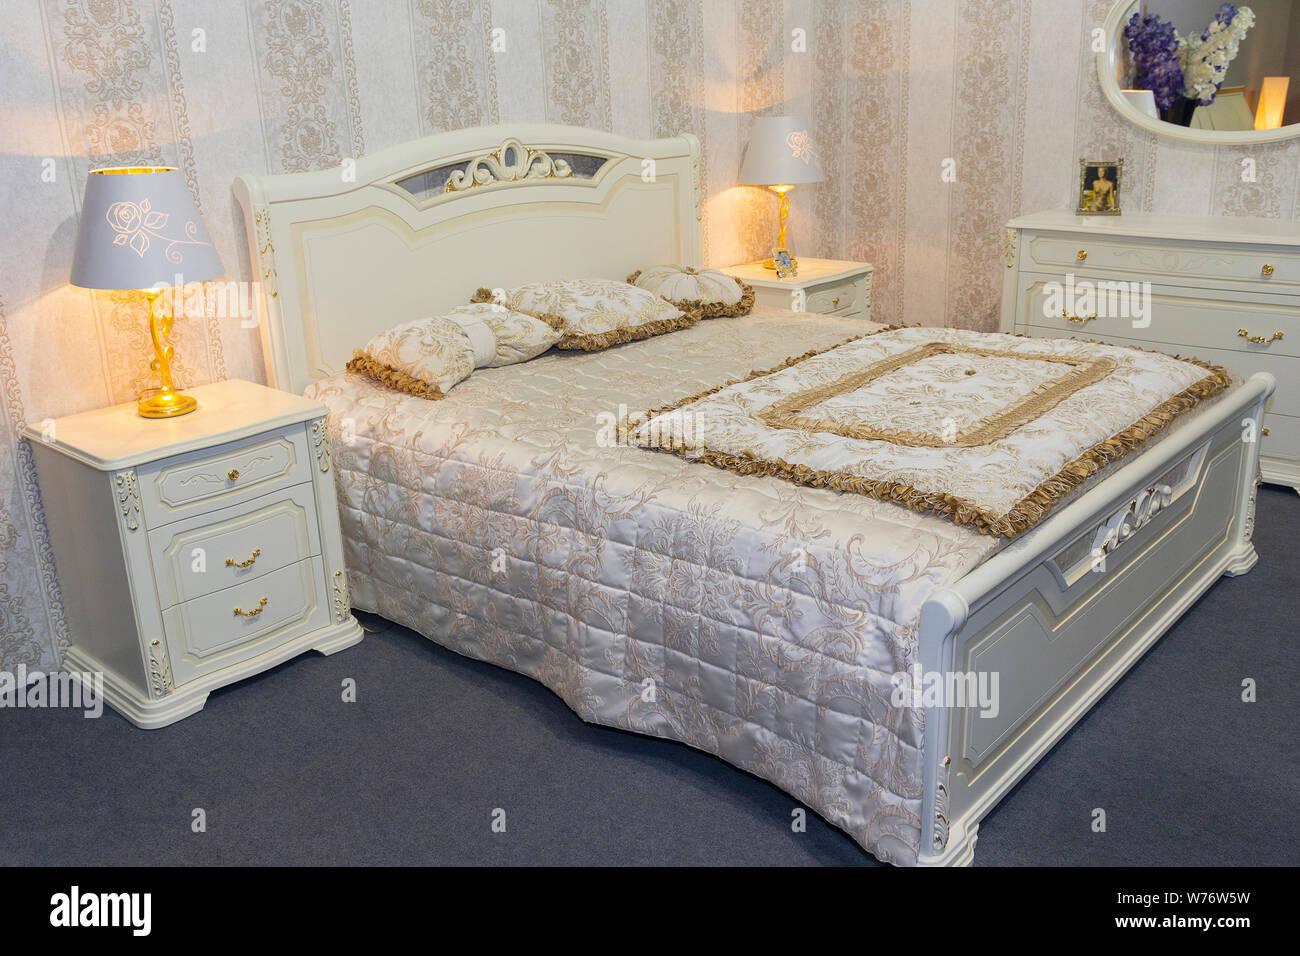 Luxury Bedroom Furniture In A Classic Style Interier Stock Photo Alamy